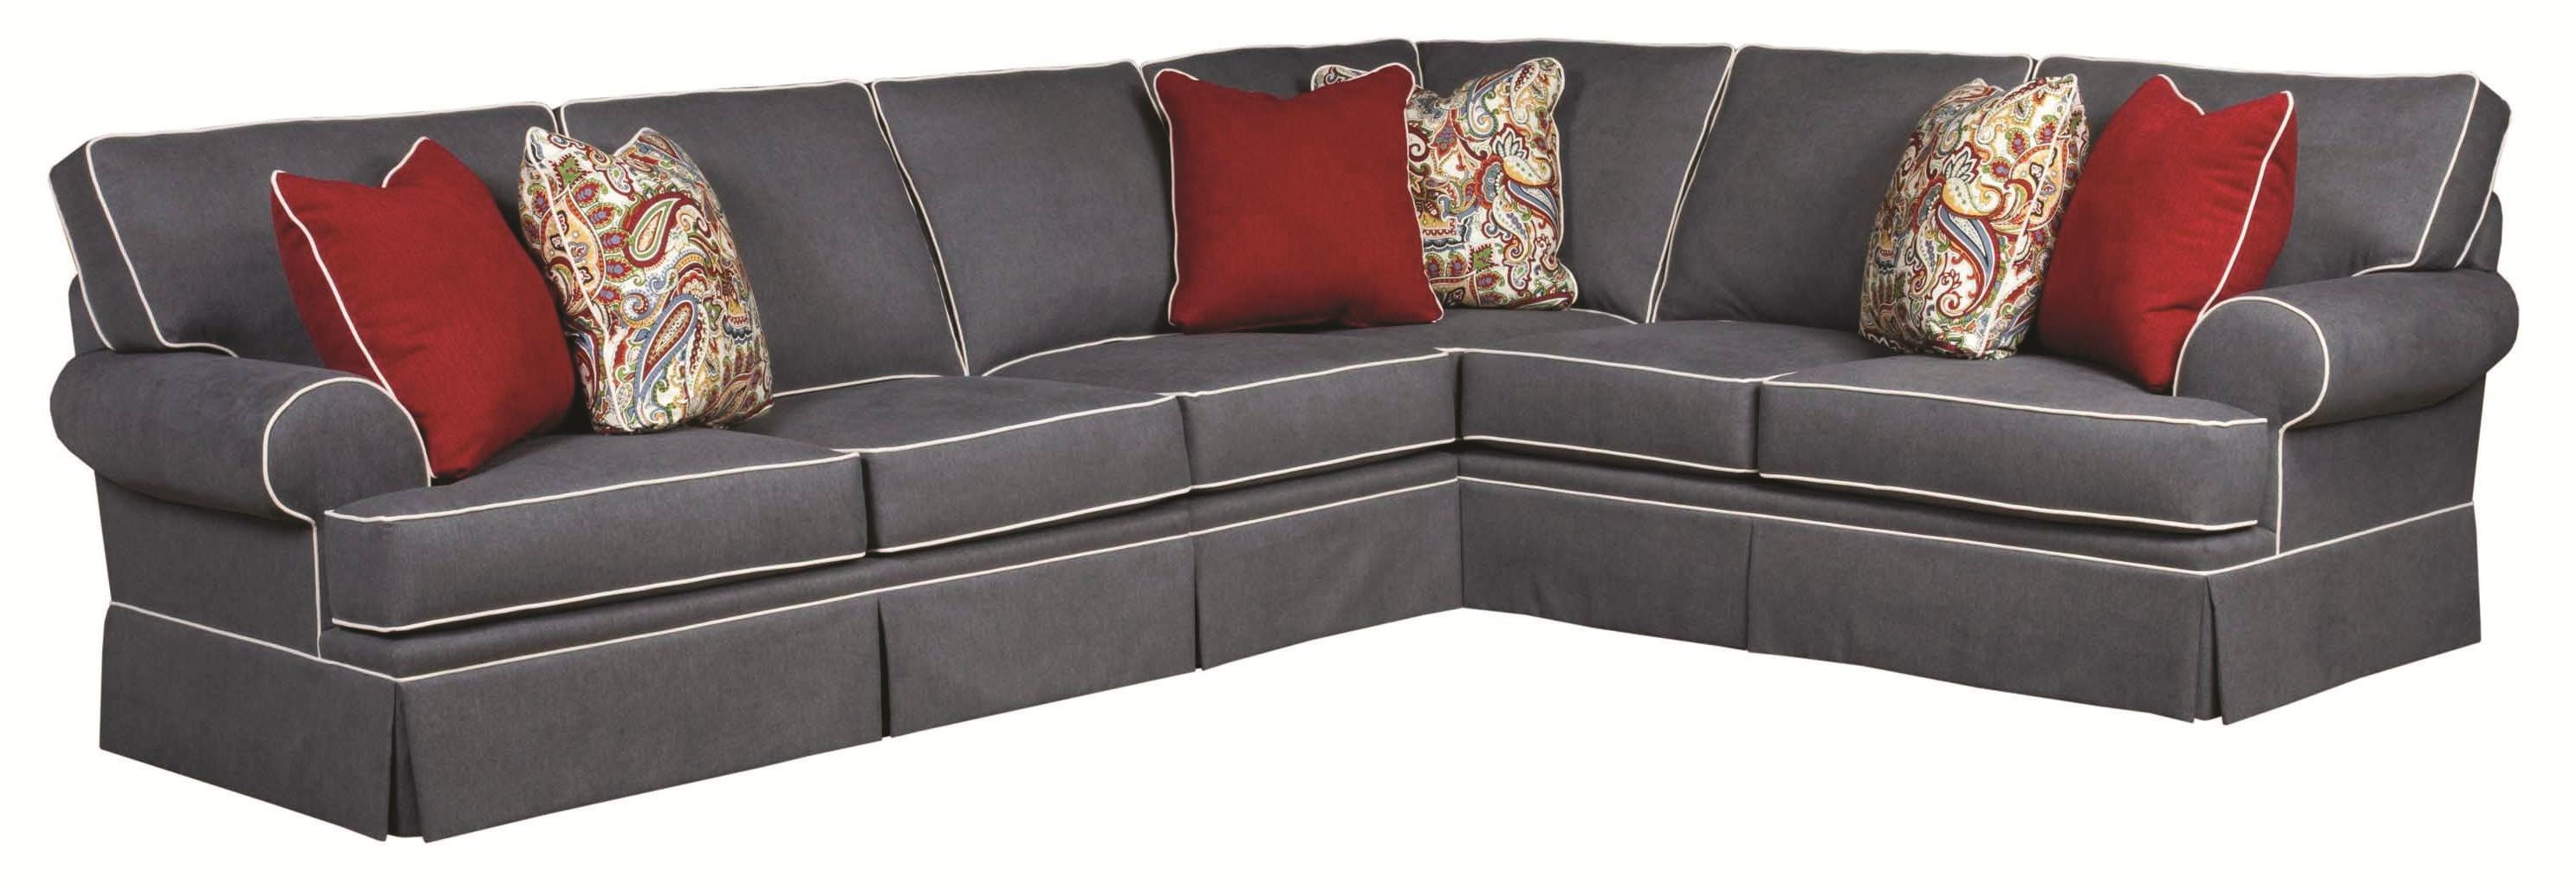 Broyhill Emily Sofa Review Taraba Home Review